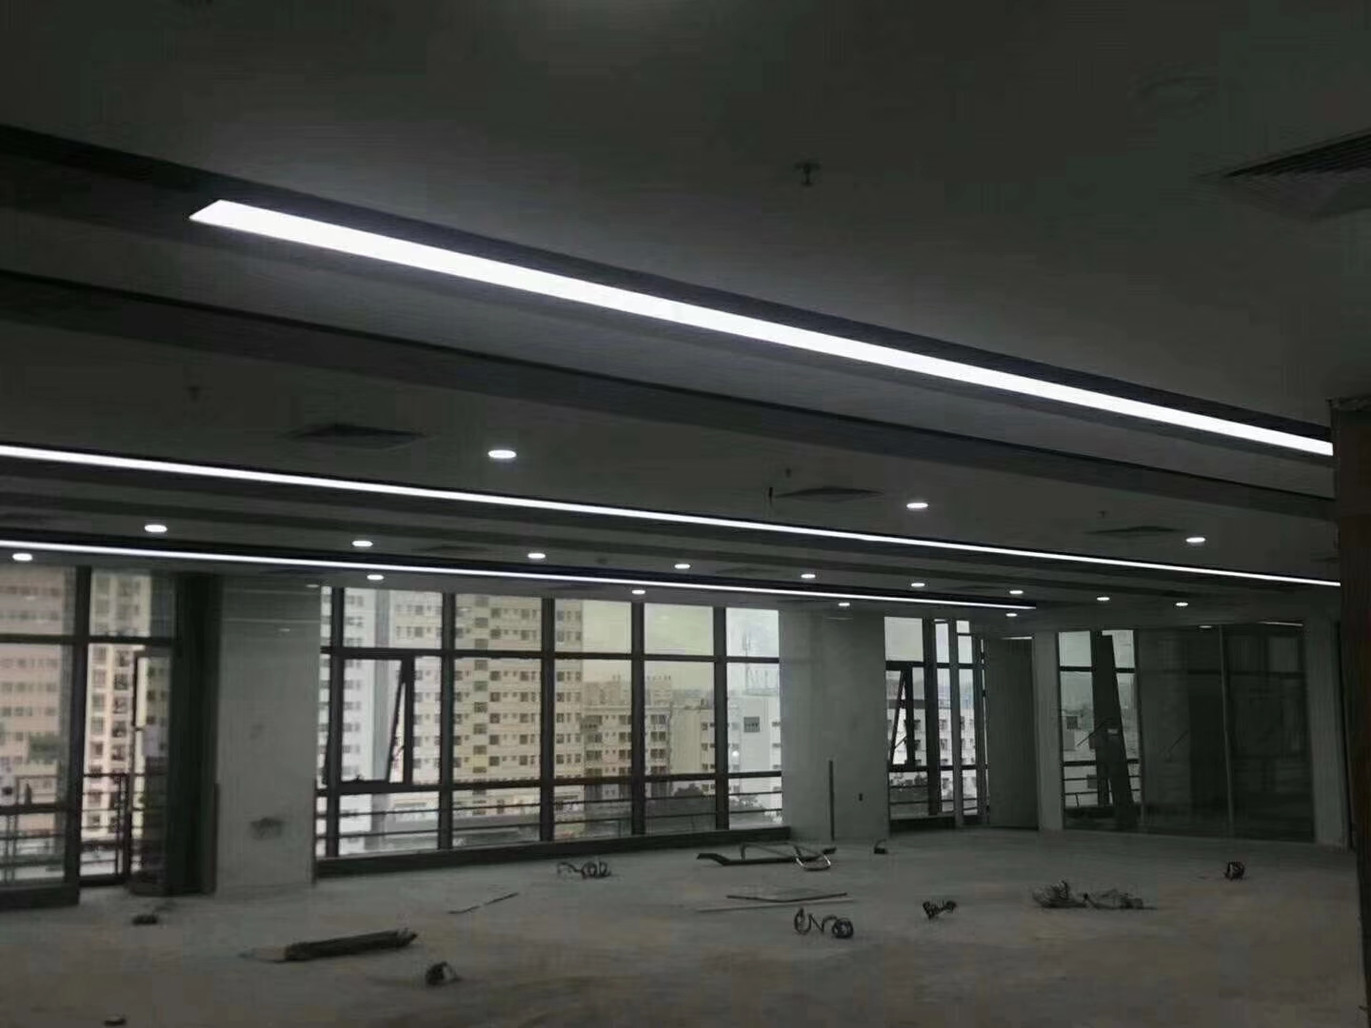 Commercial property work